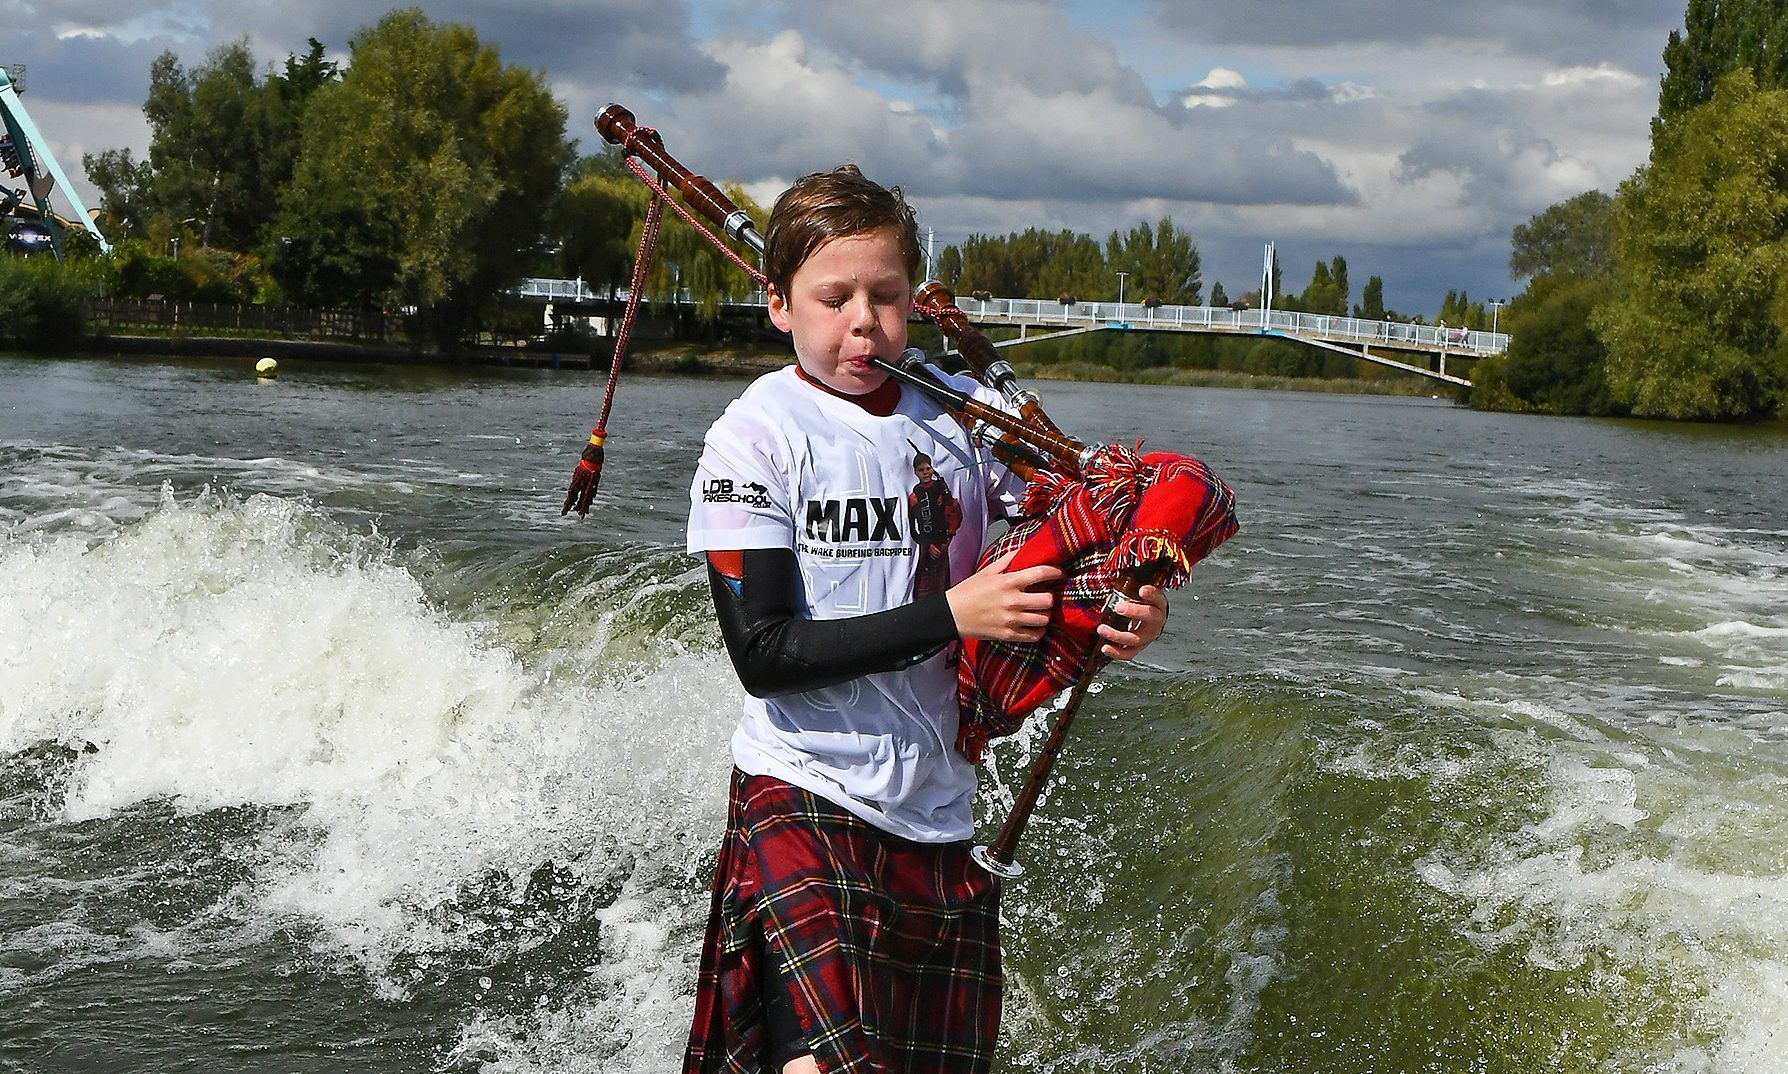 Max Rae wakesurfing with his pipes.